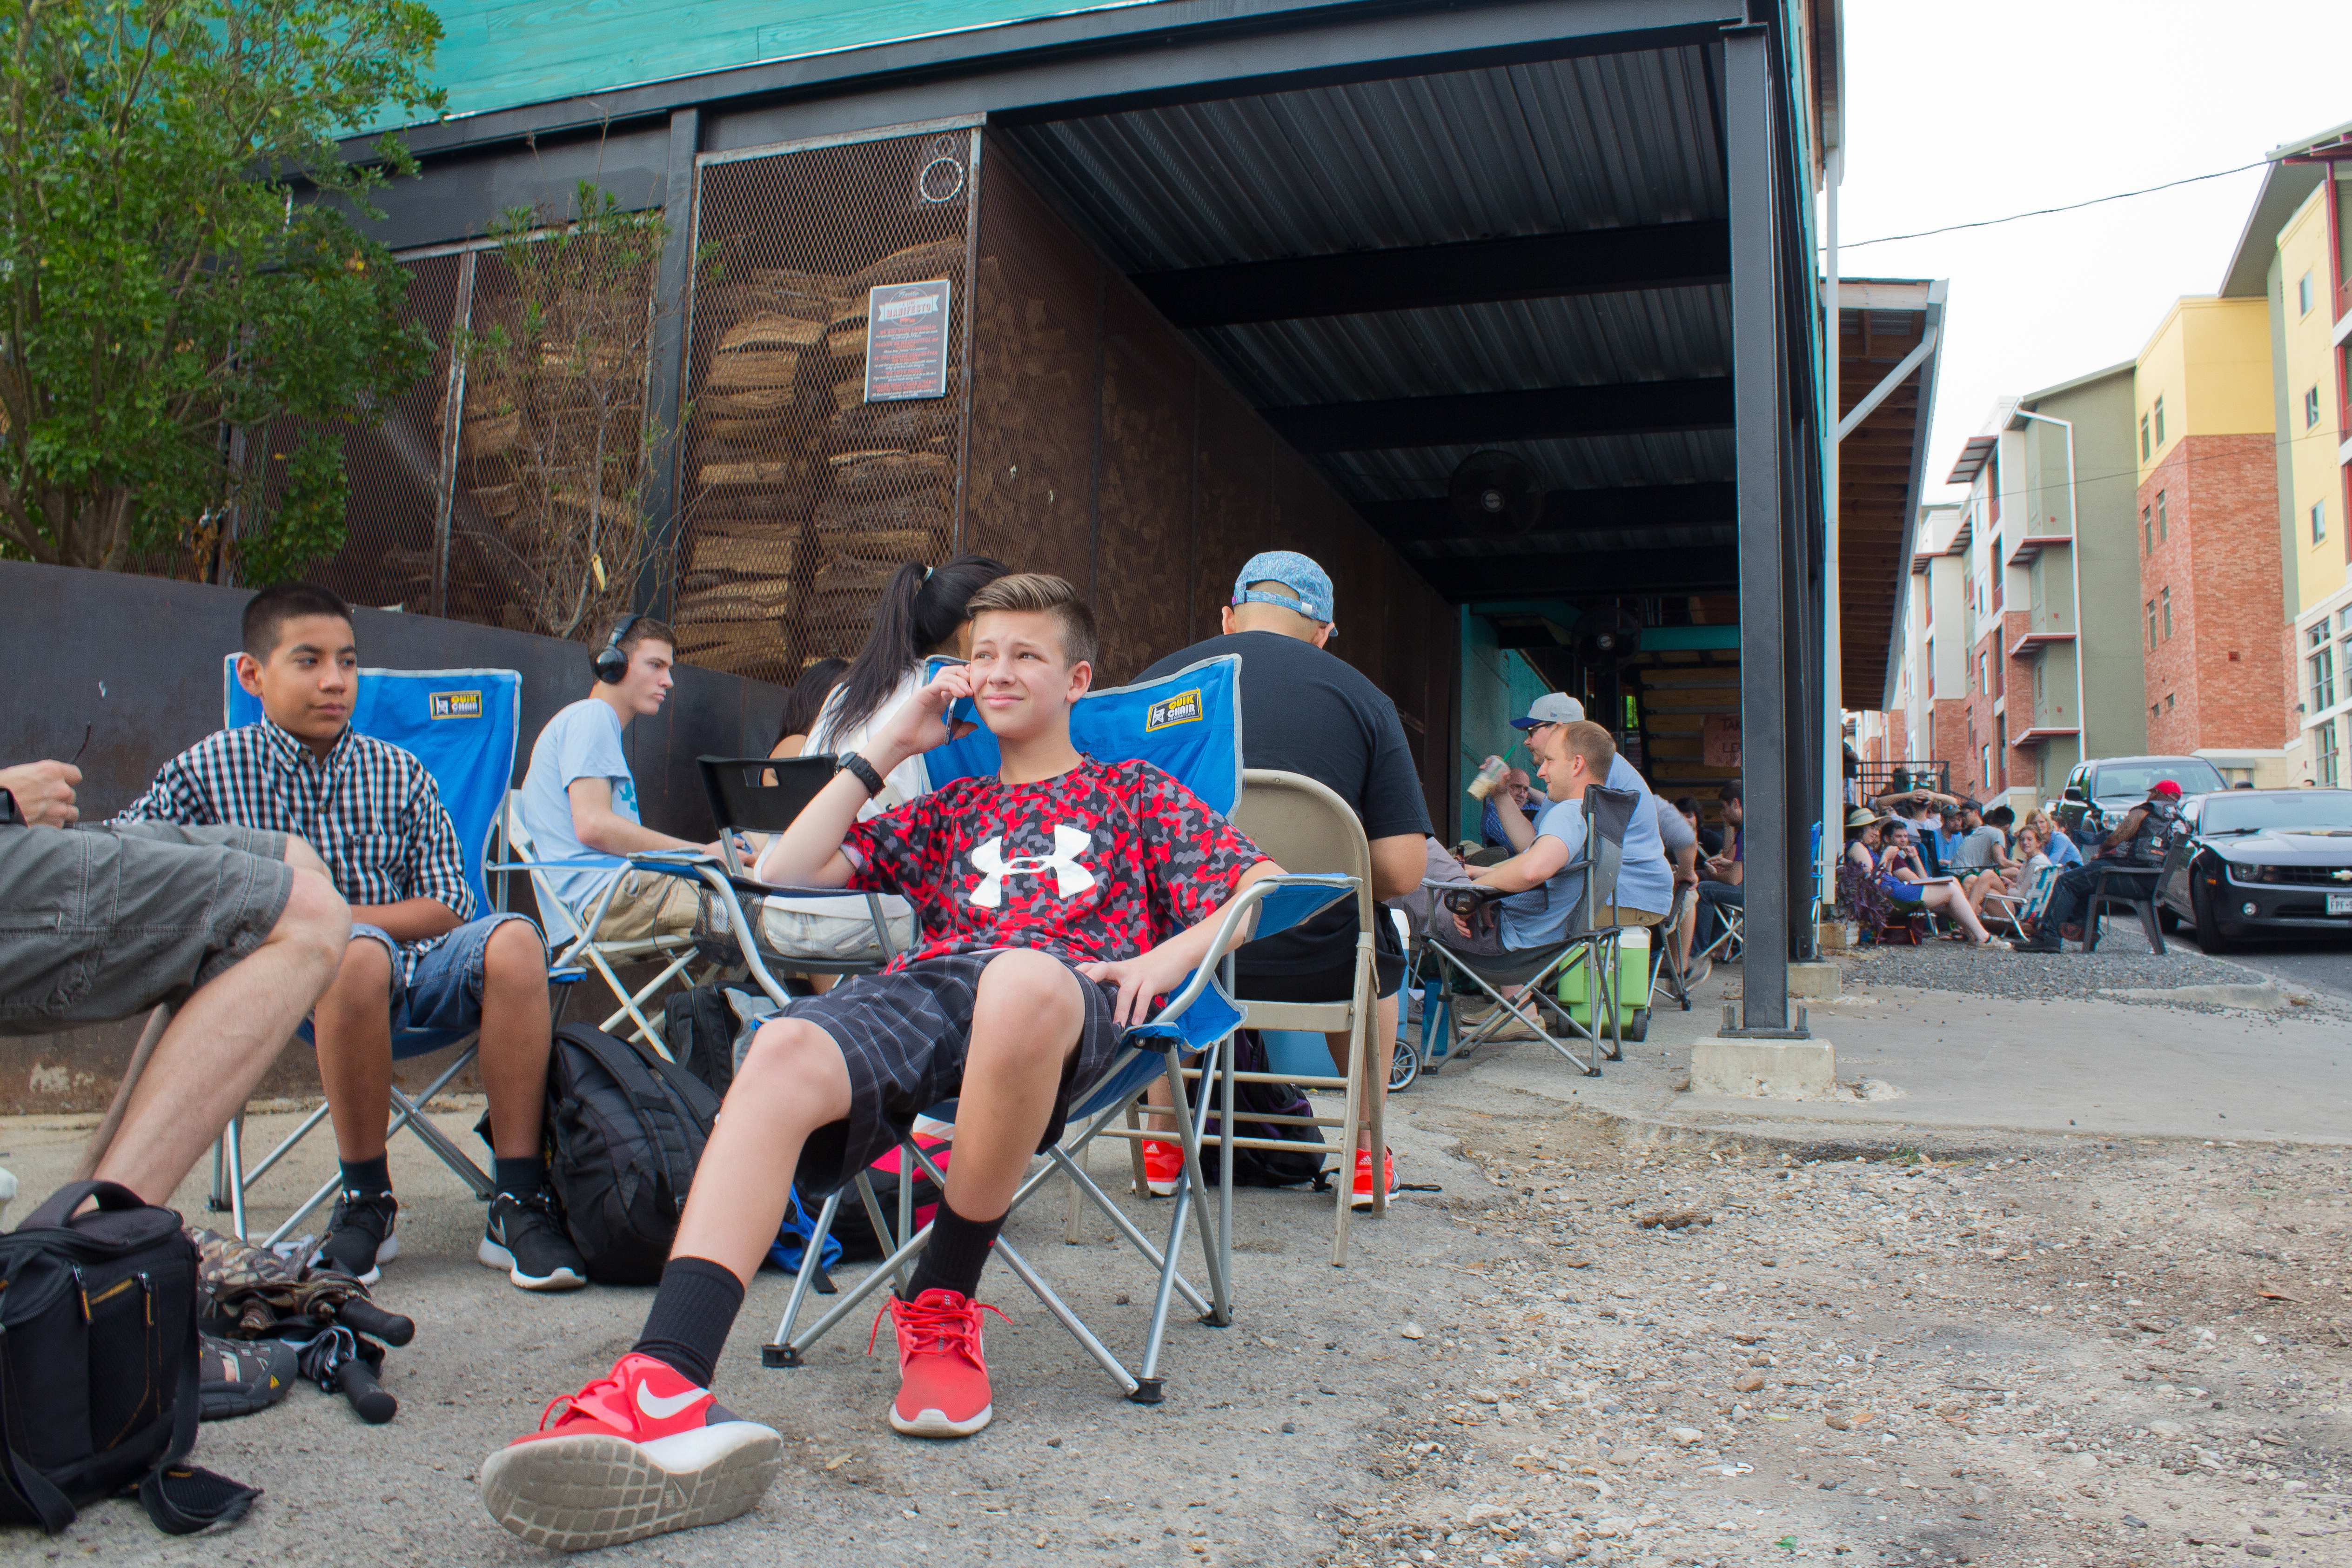 Desmond Roldan waiting in line at Franklin earlier this year.